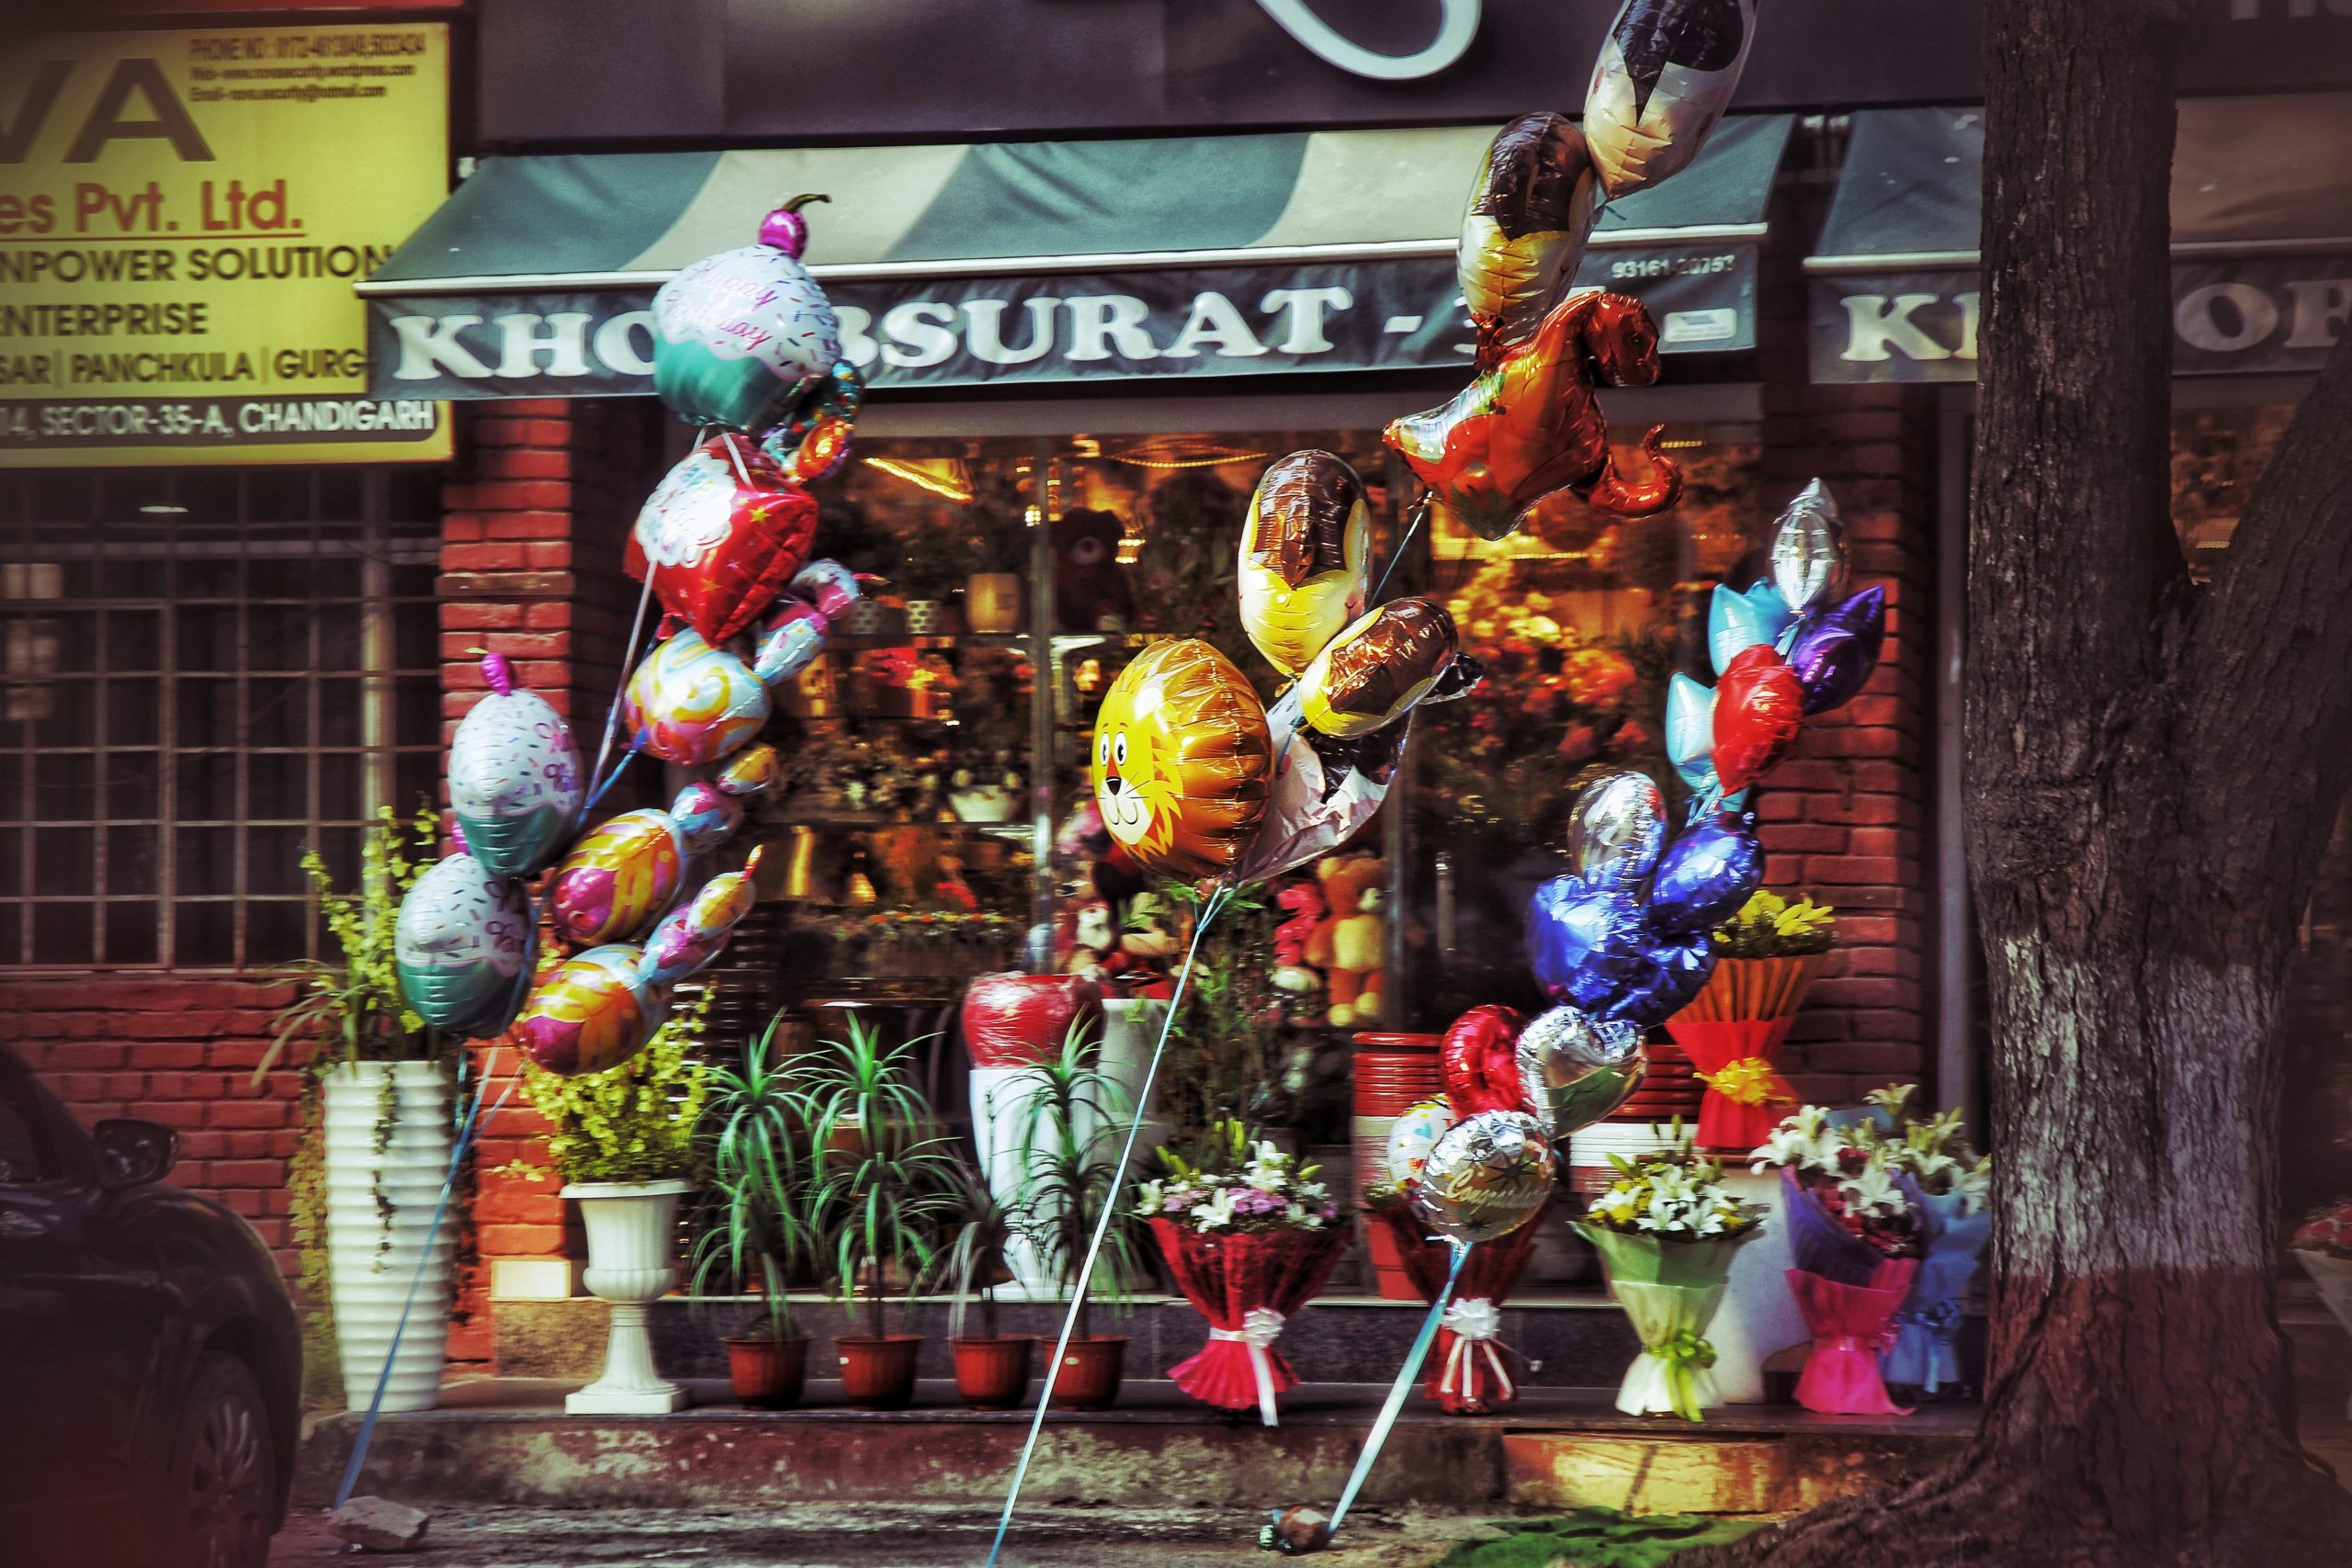 A shop of inflated toys